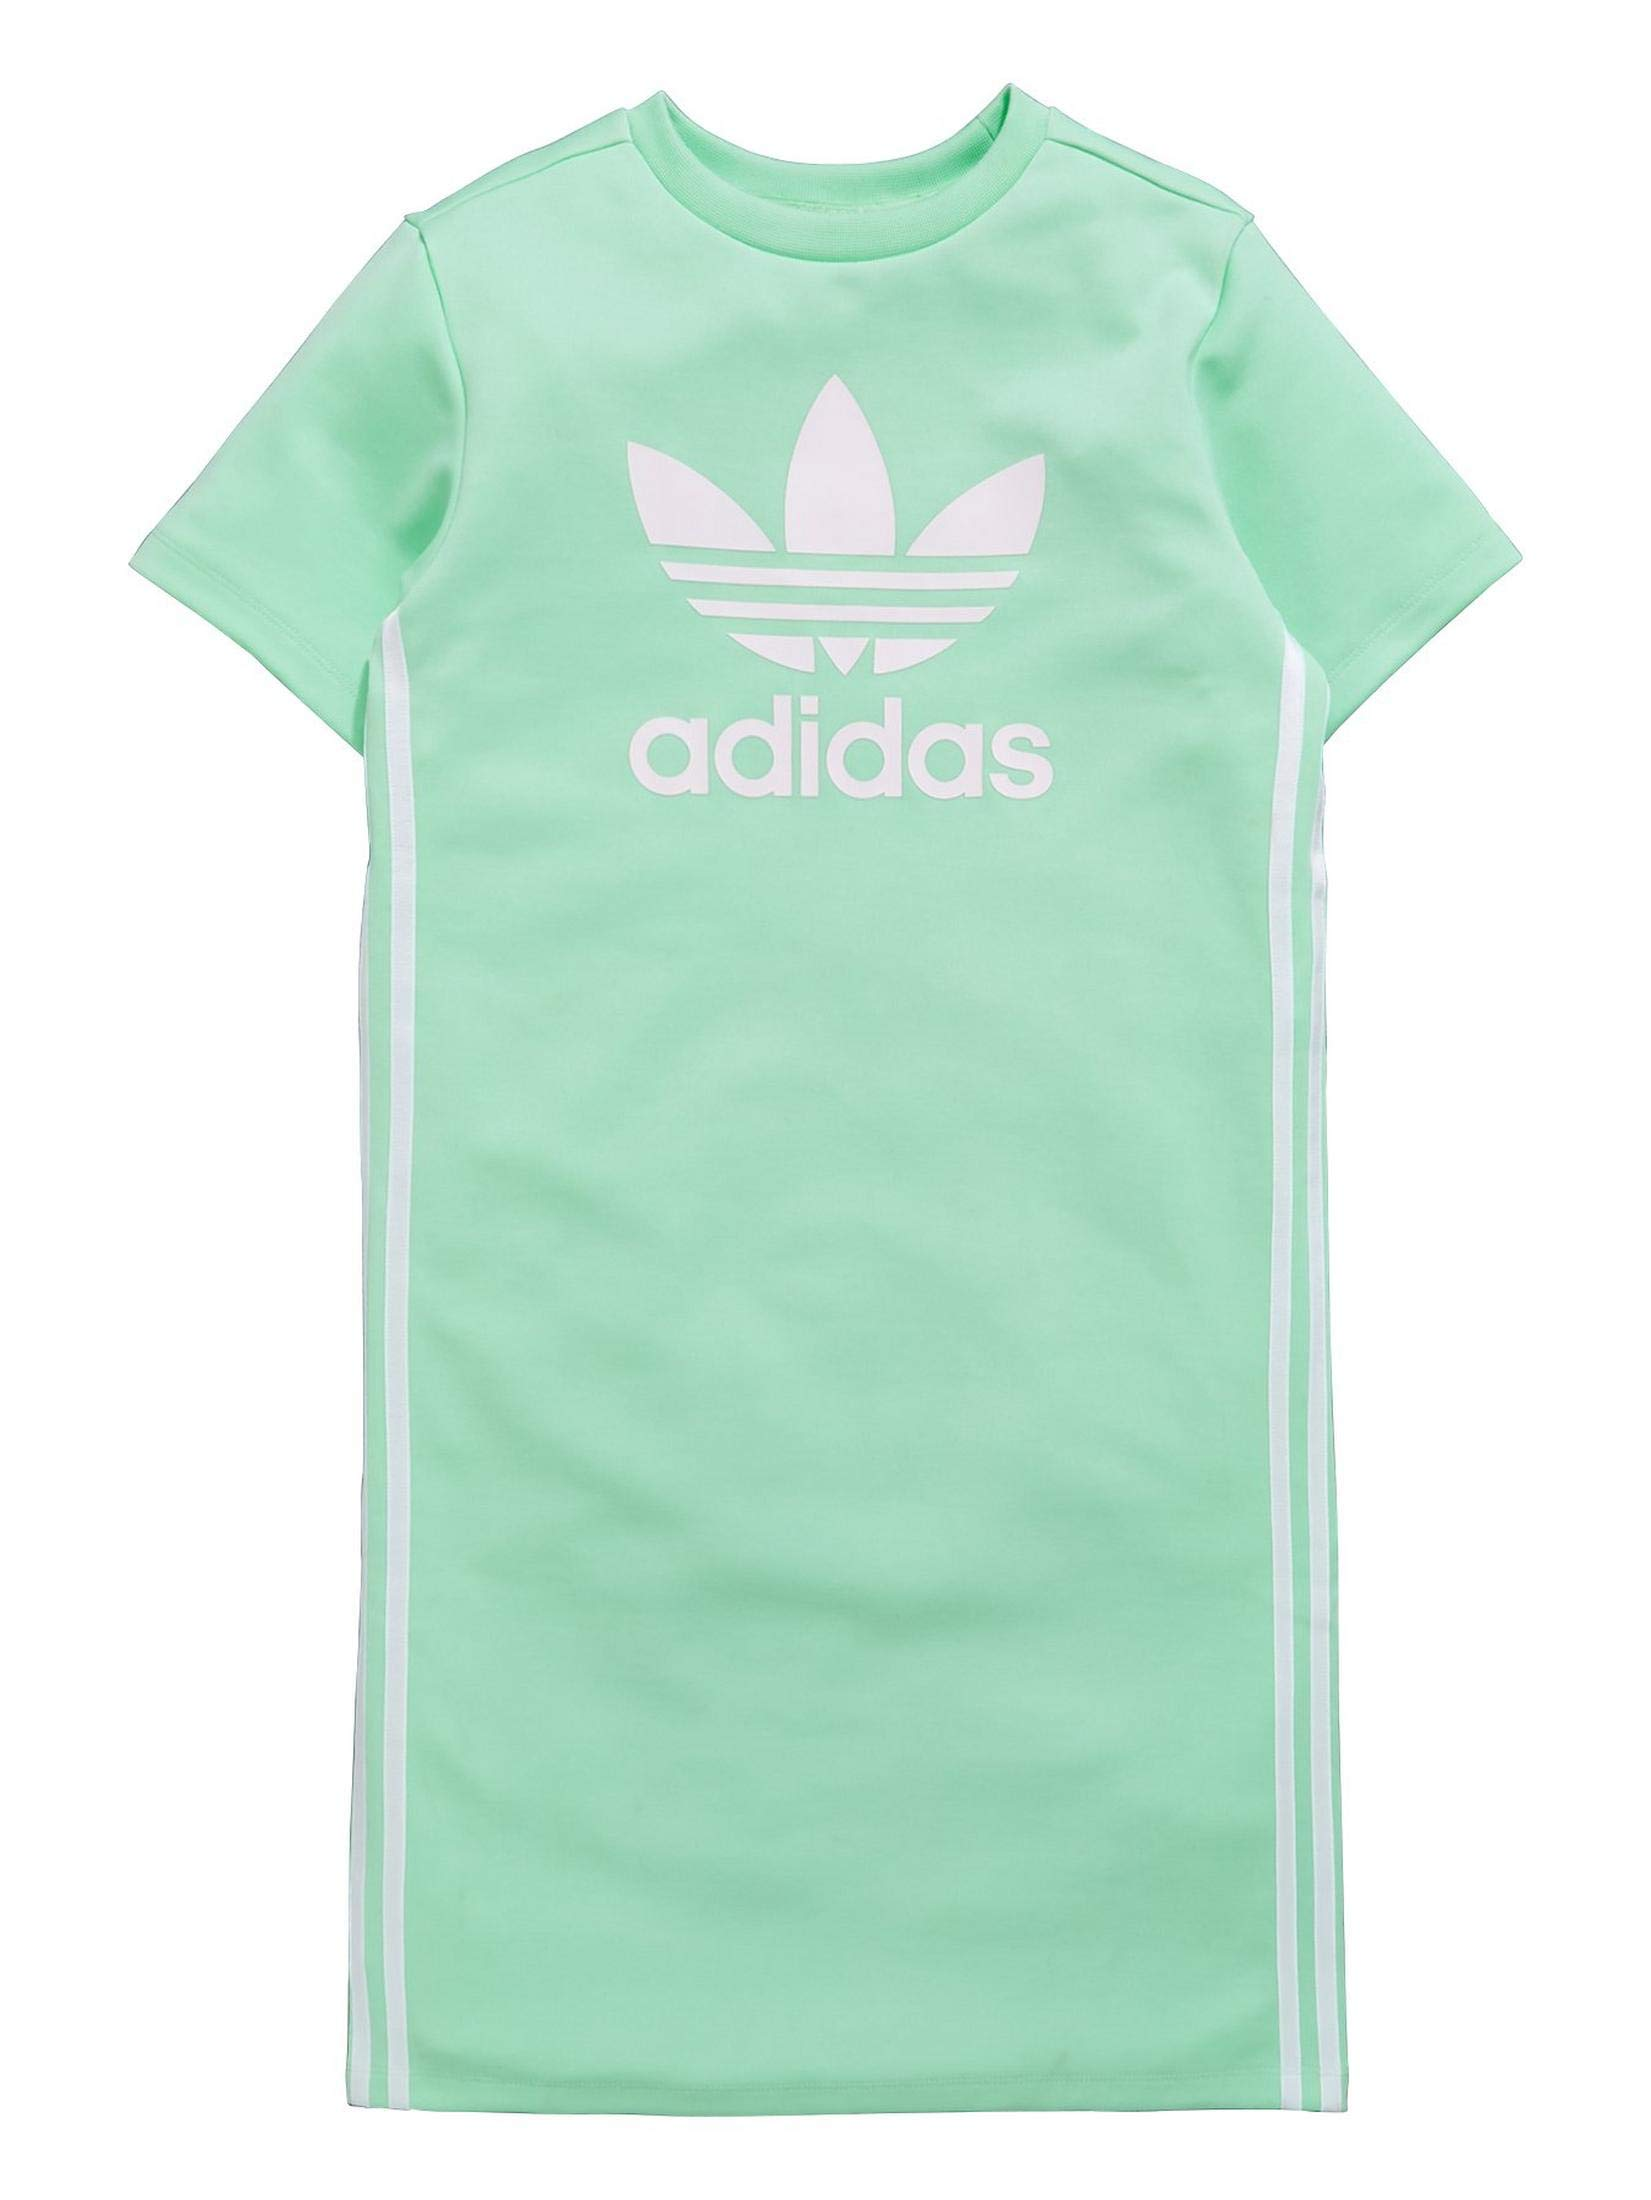 adidas Originals Girls Tank Sleeveless Zoo Dress (Large, Clear Mint/White) by adidas Originals